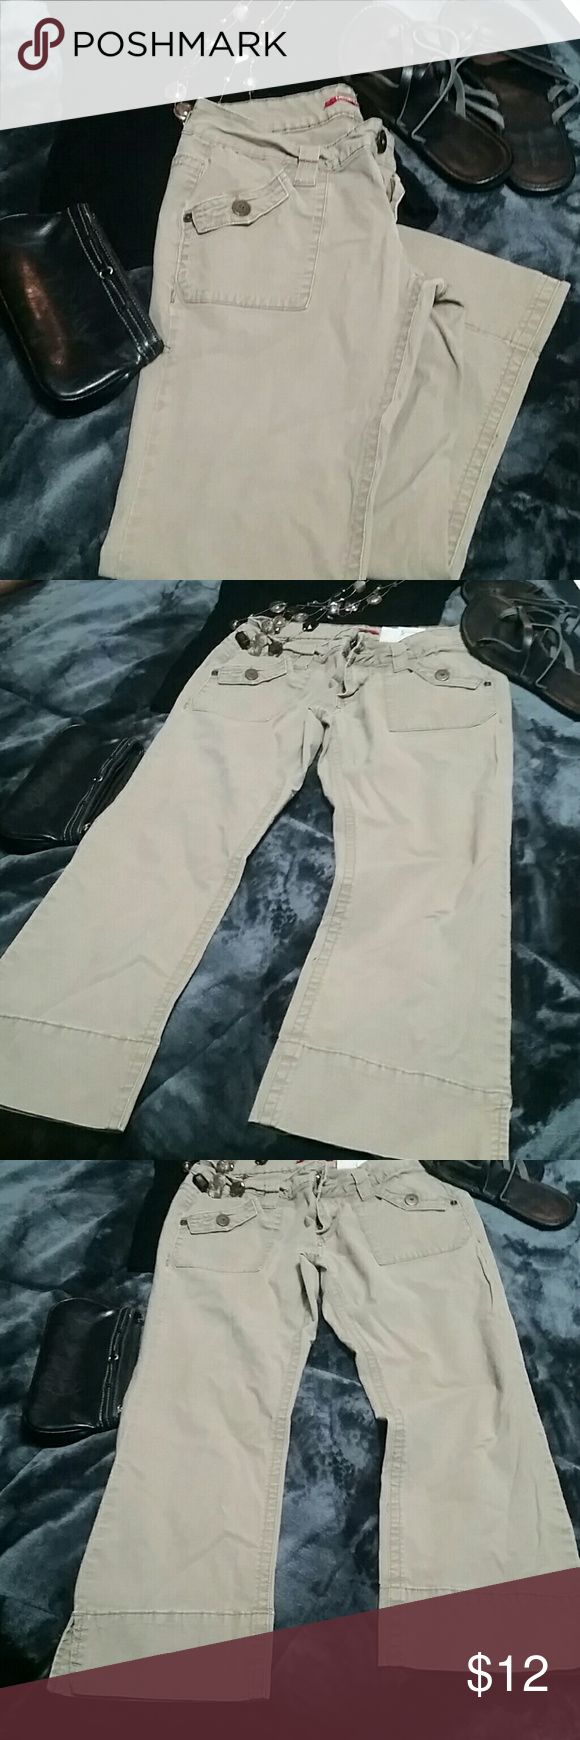 Khaki Capri pants size 3 Unionbay khaki capris. Size 3. Excellent spring and summer staple, goes with anything and can be worn everywhere! ?????????? UNIONBAY Pants Capris